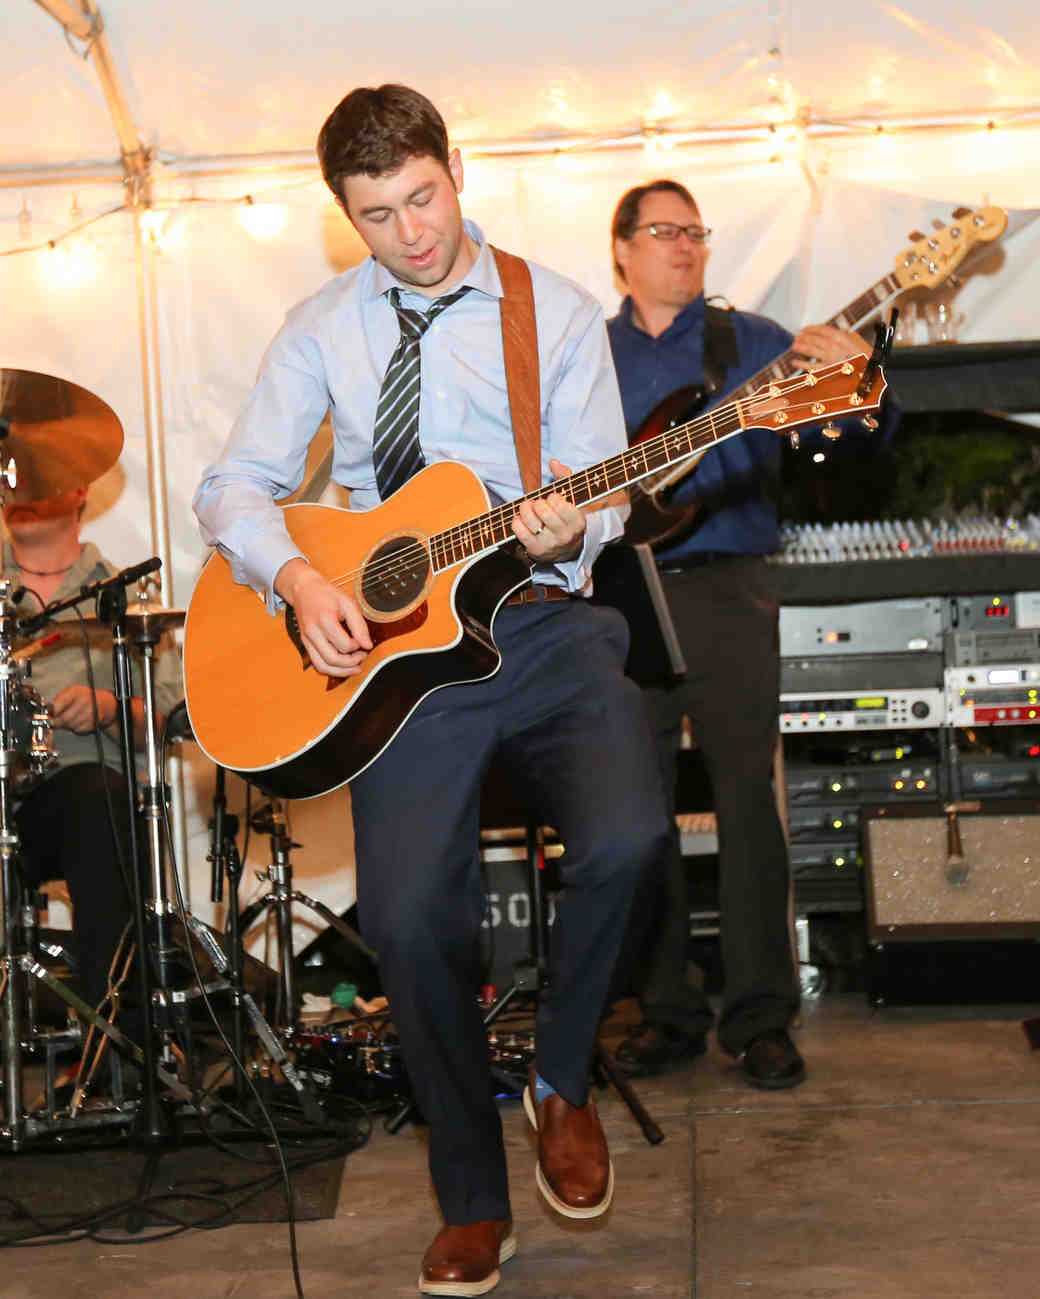 lana-danny-wedding-guitar-971-s111831-0315.jpg